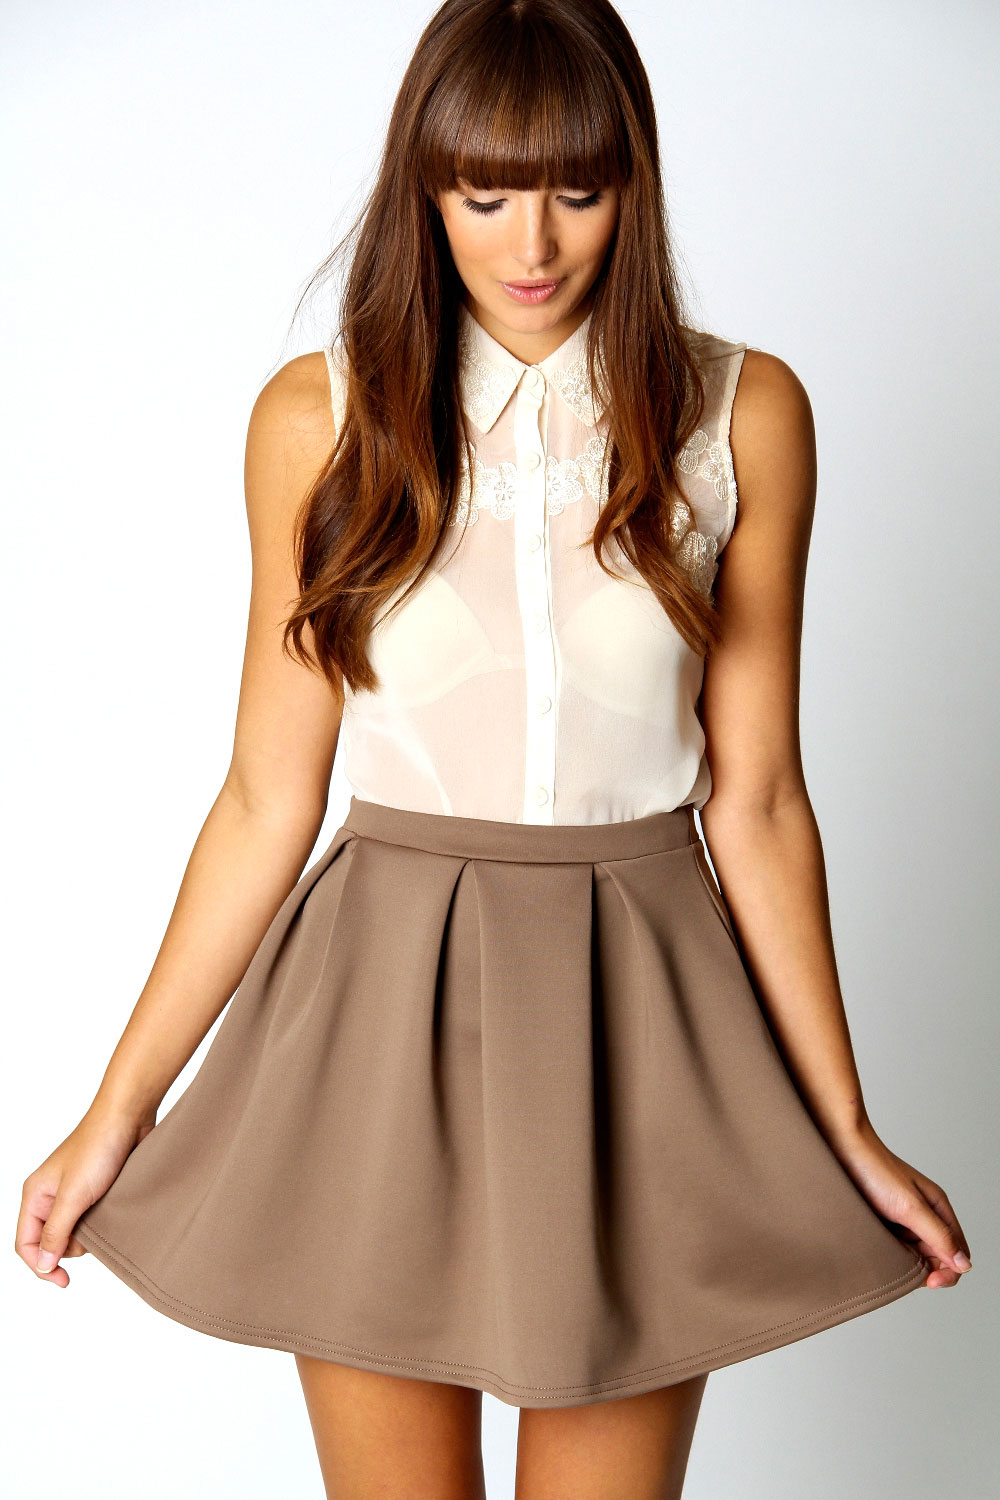 Boohoo-Kate-Box-Pleat-Skater-Hip-Length-Skirt thumbnail 6